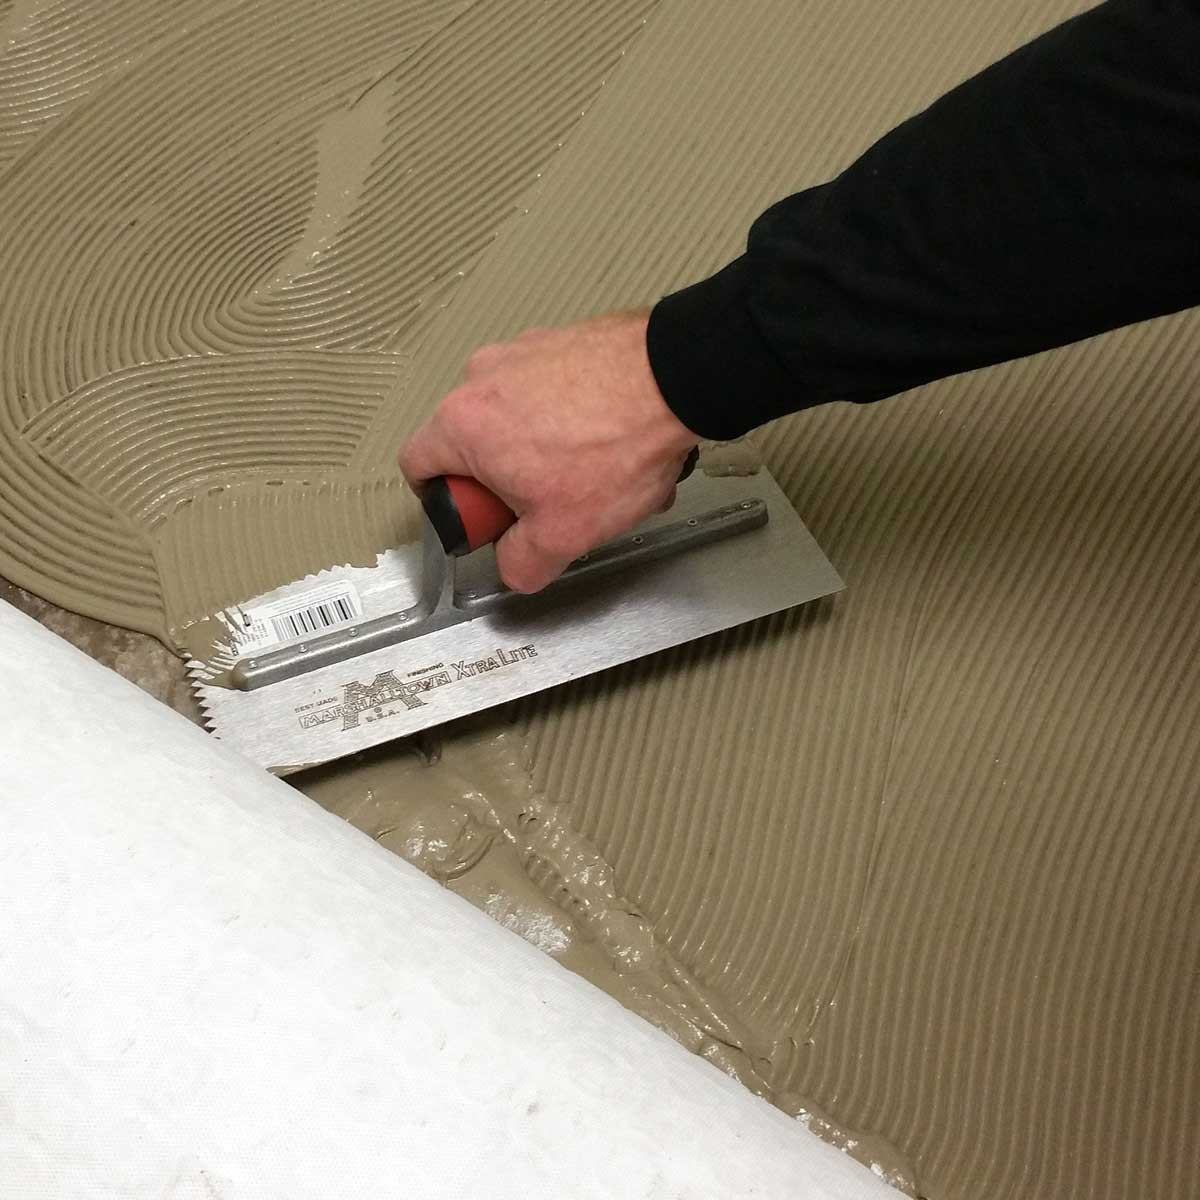 Spreading Thinset with Marshalltown V-Notched Trowel